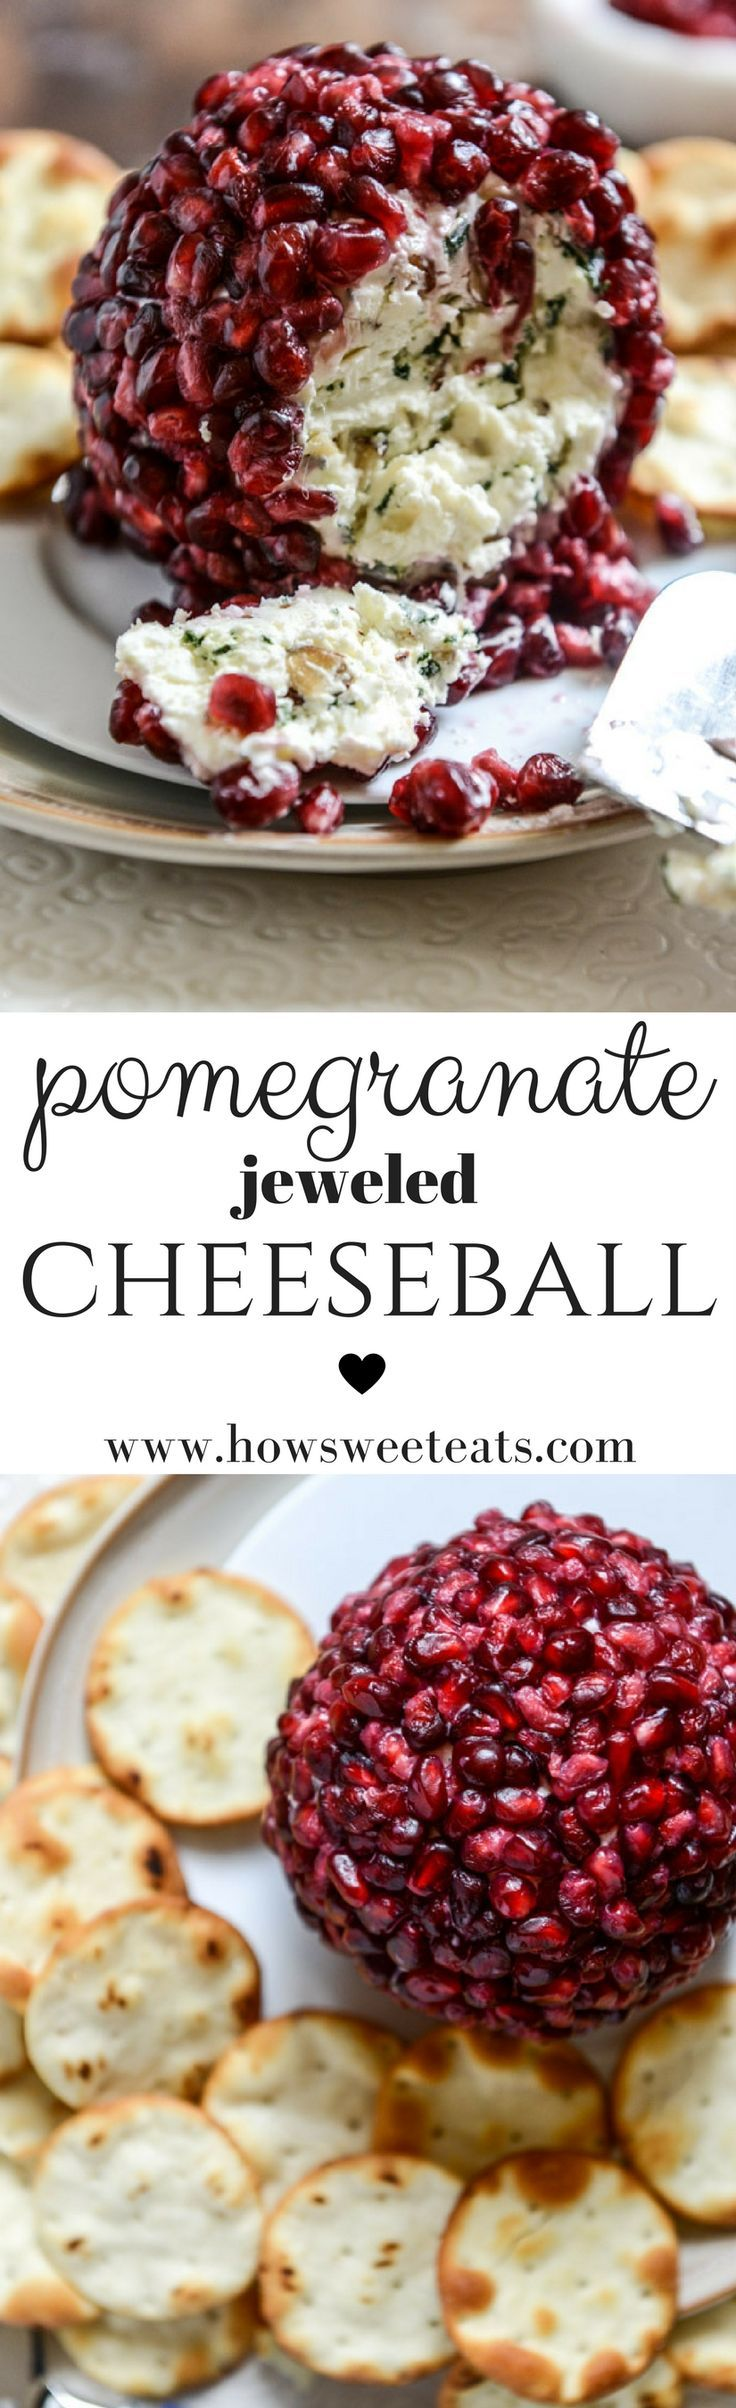 Pomegranate Jeweled Cheeseball by @howsweeteats I howsweeteats.com #thanksgiving #appetizers